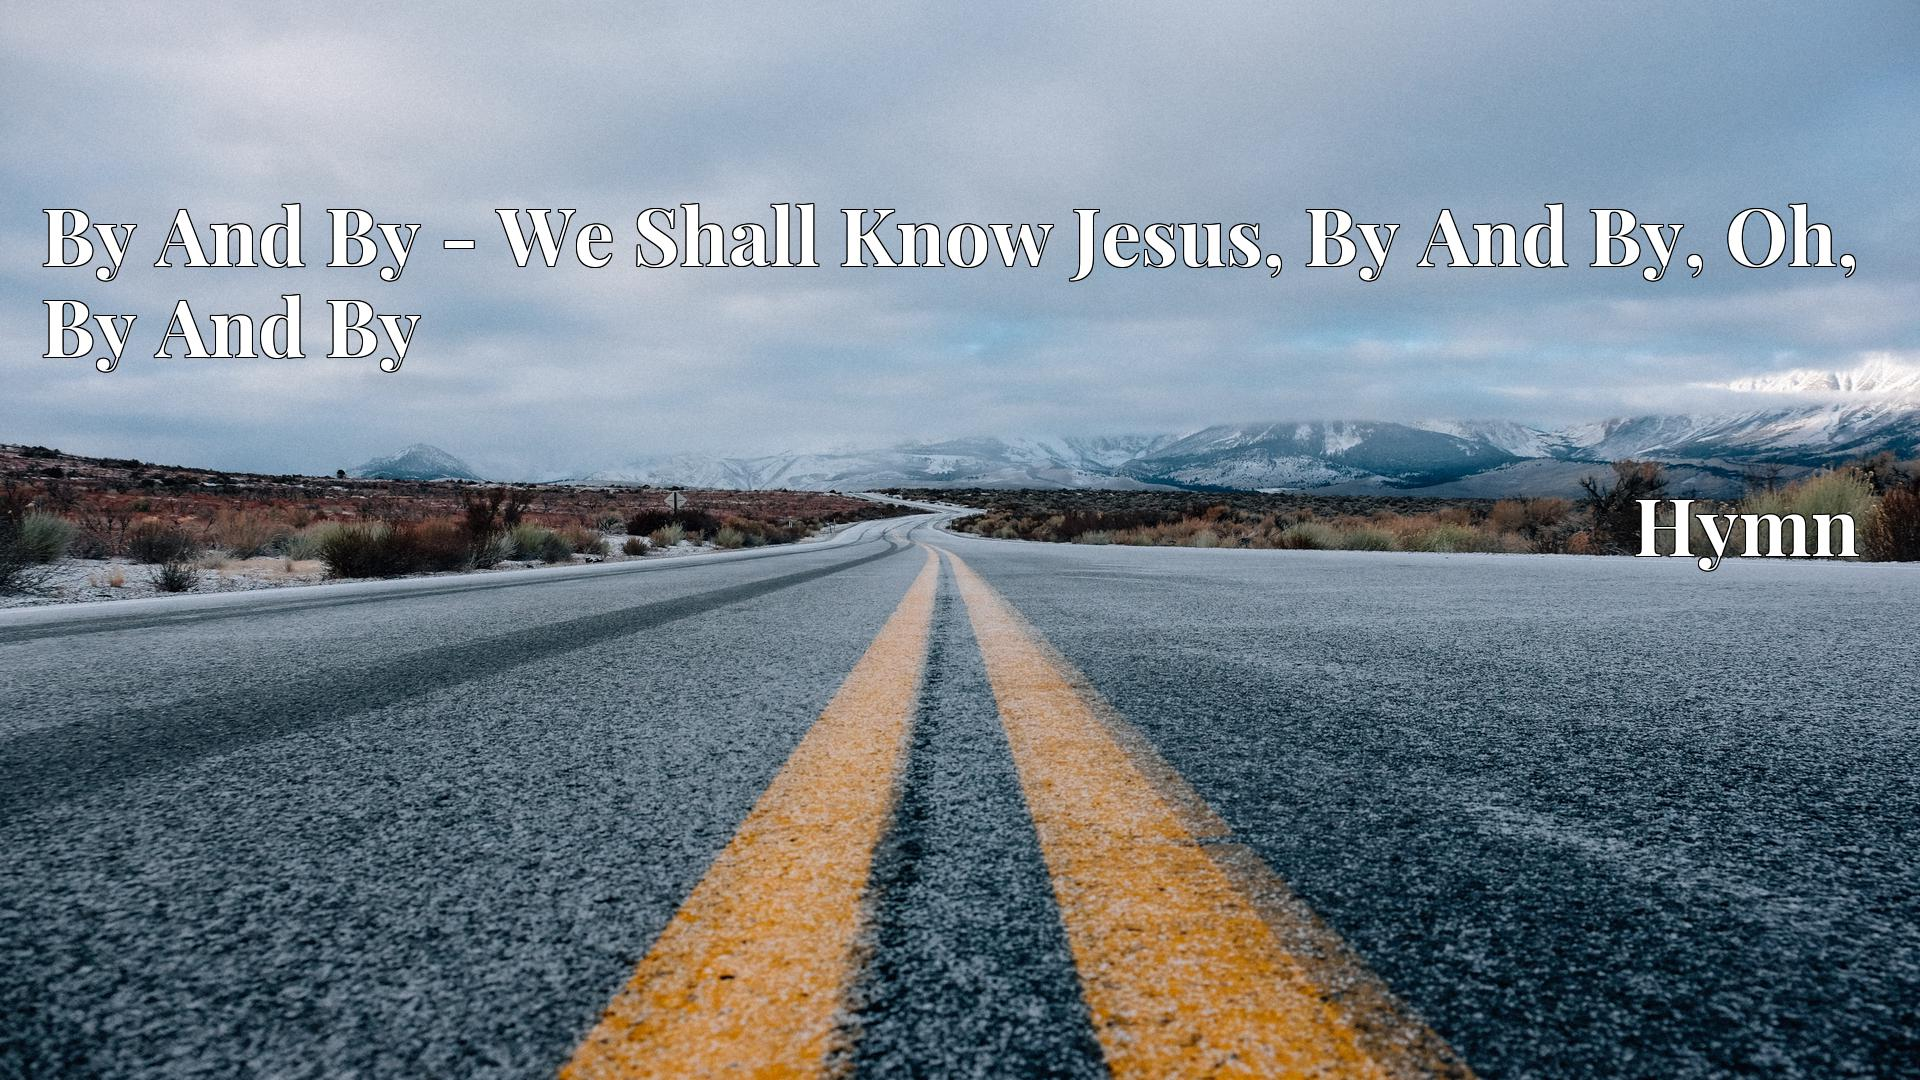 By And By - We Shall Know Jesus, By And By, Oh, By And By Hymn